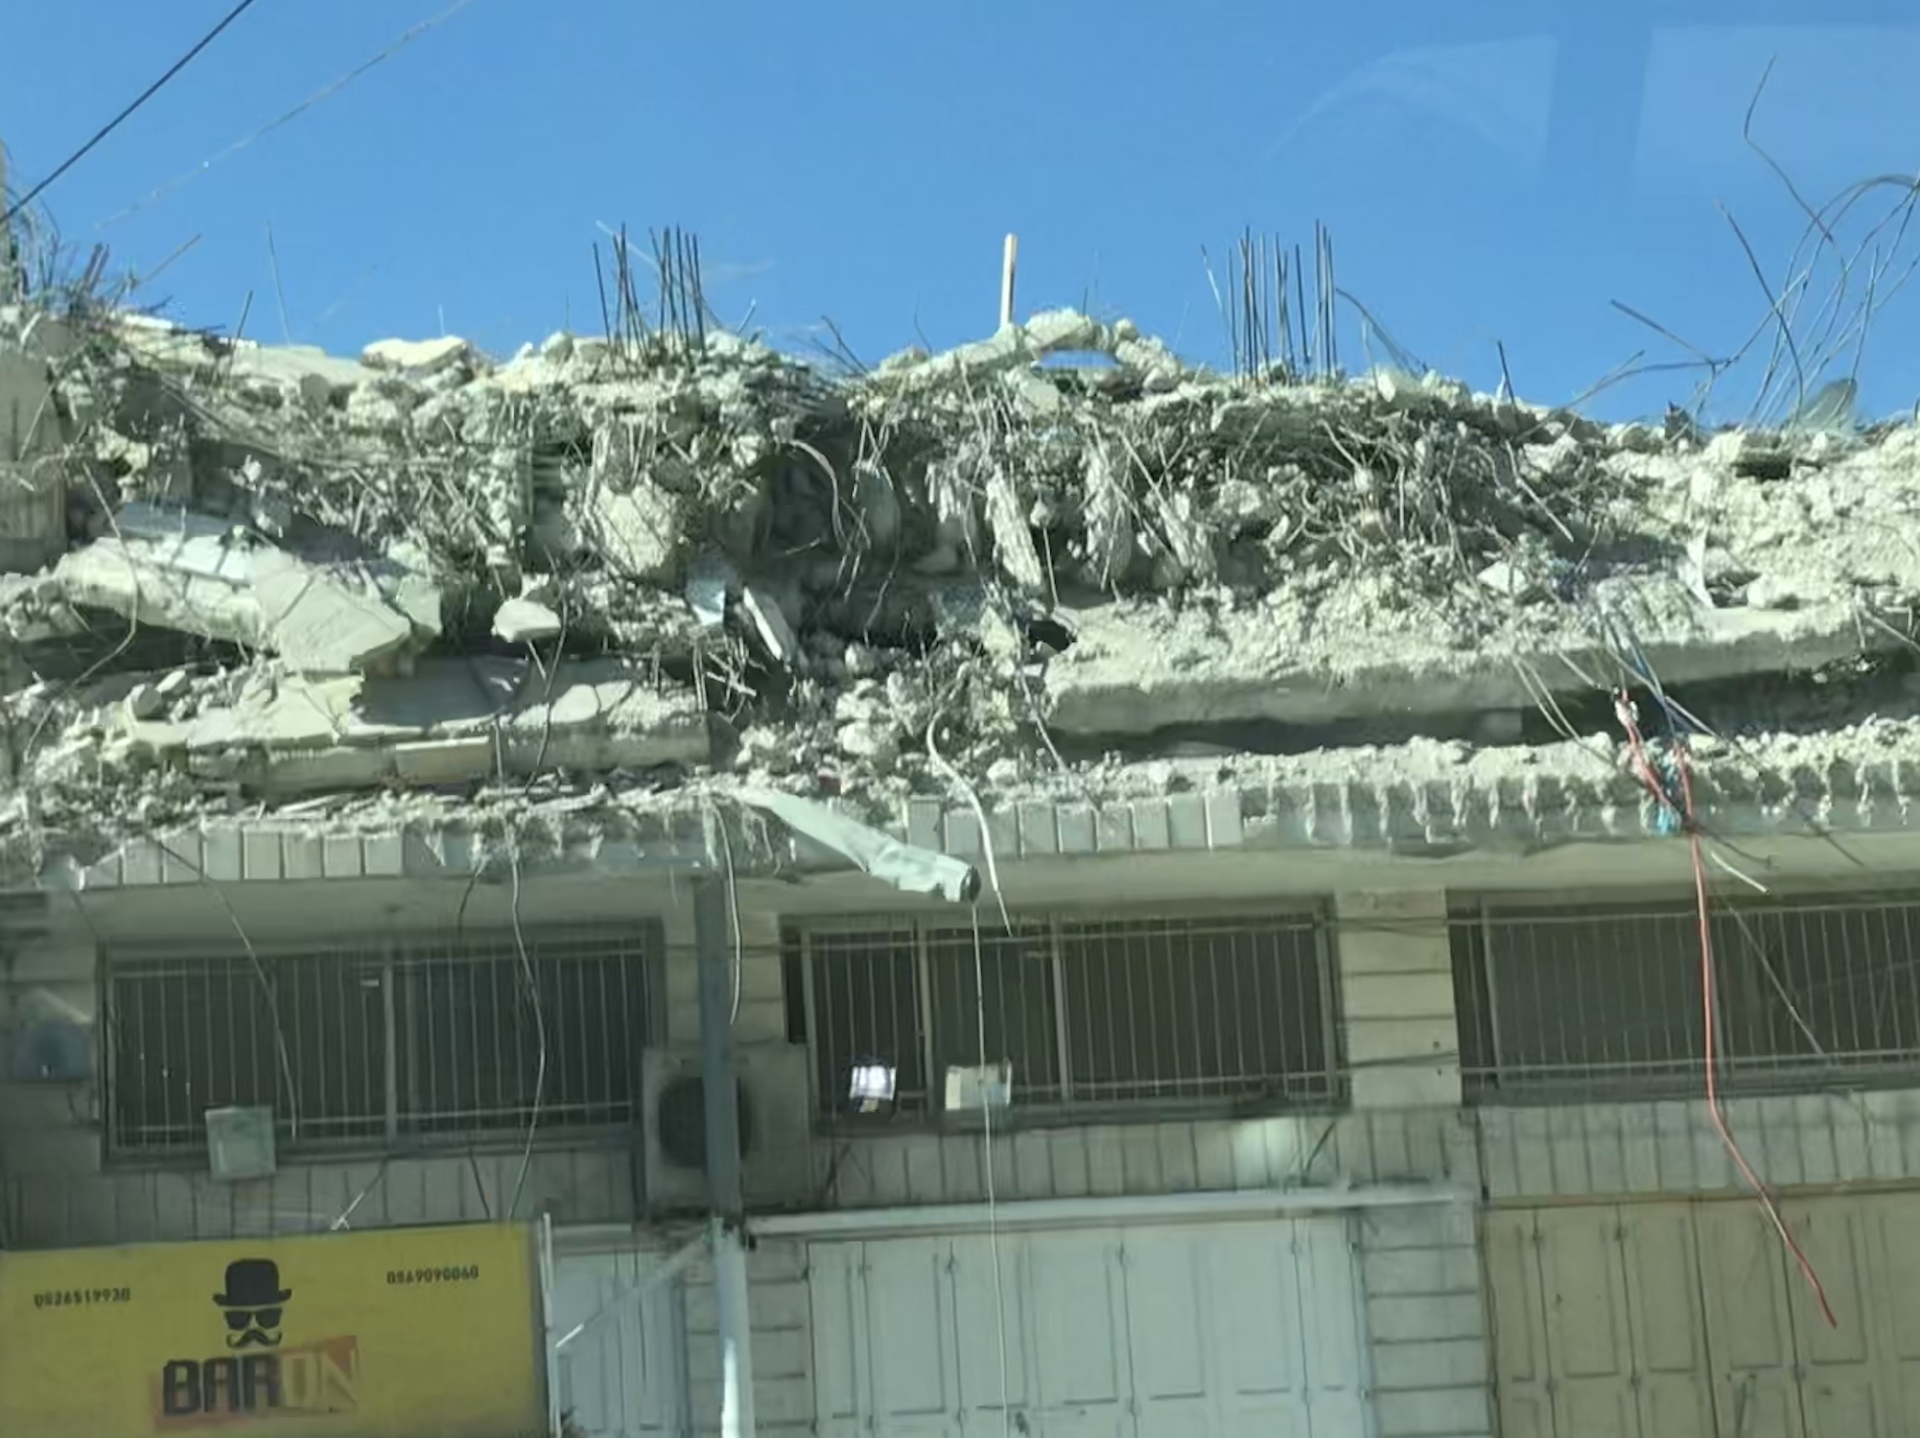 Passing through Qalandiya / November 5, 2019